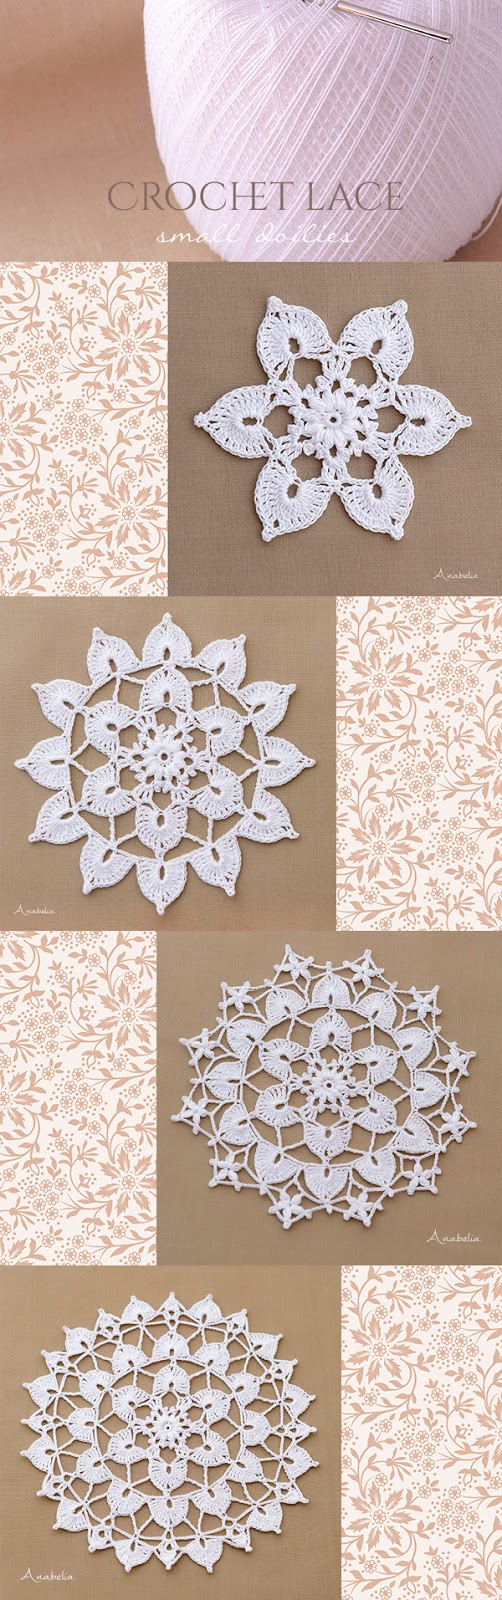 New crochet lace doilies by Anabelia Craft Design